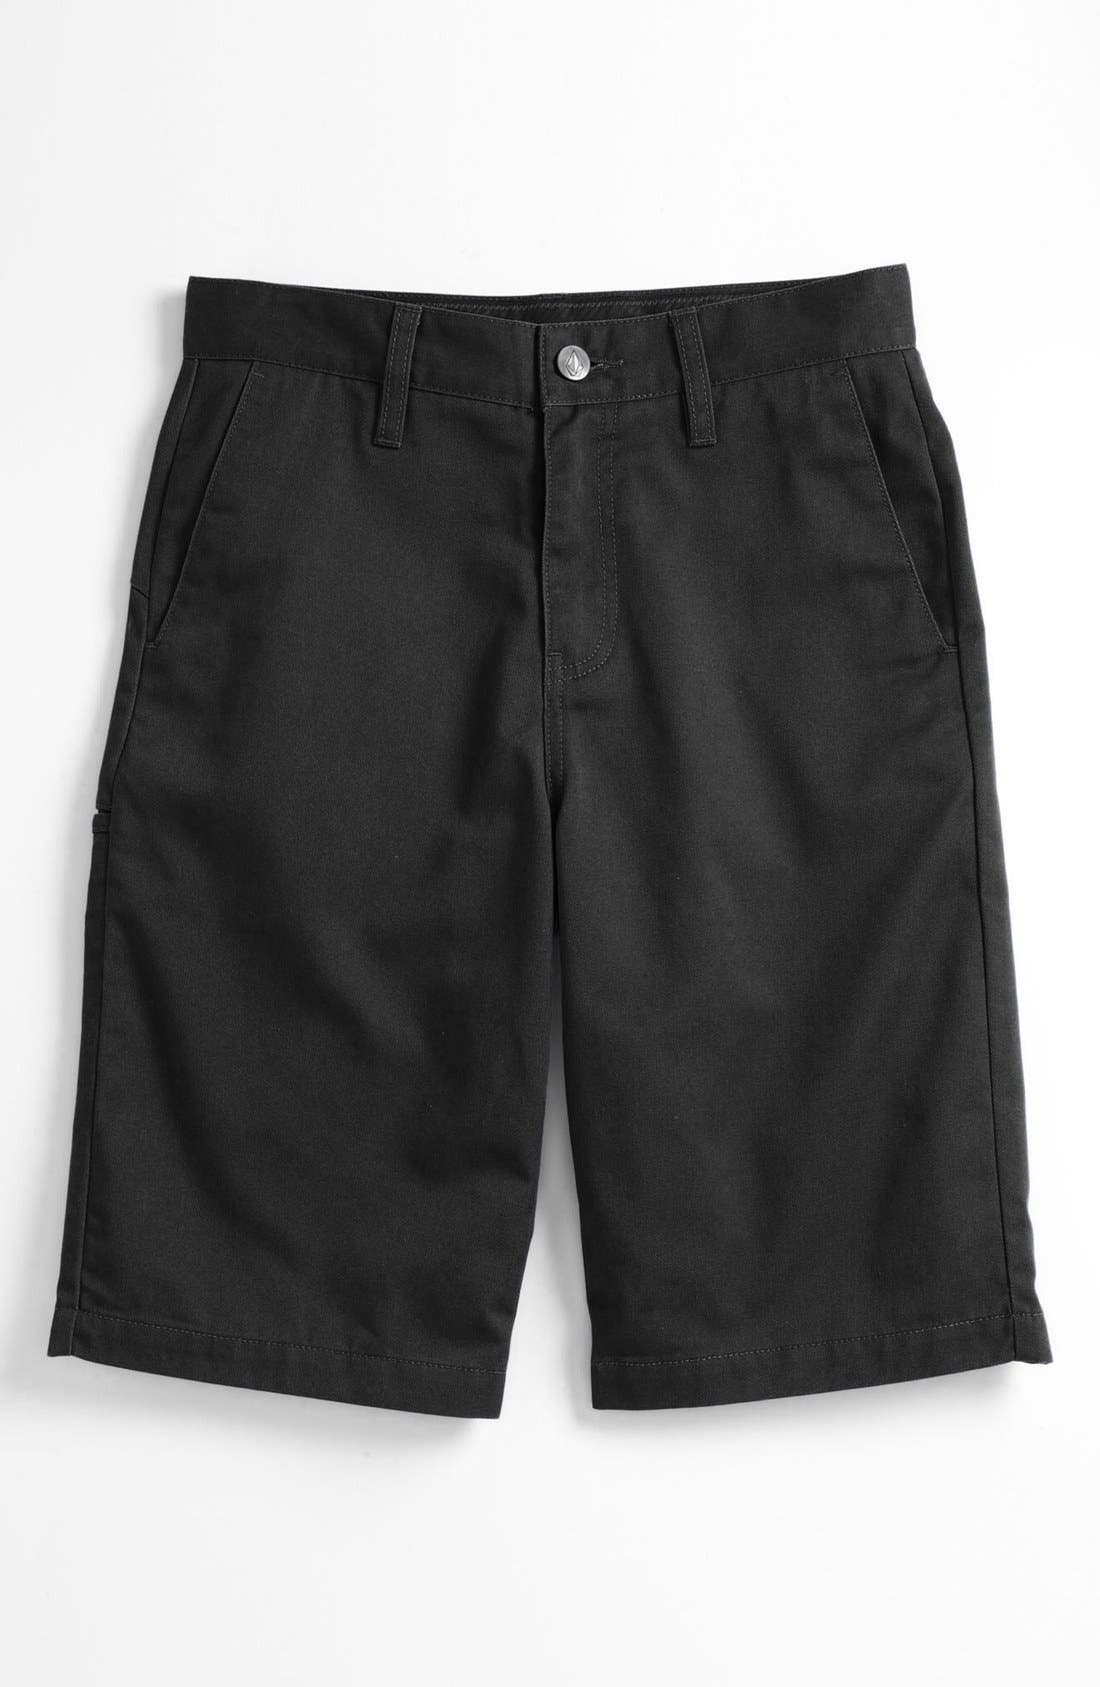 Alternate Image 1 Selected - Volcom 'Friendly' Chino Shorts (Big Boys)